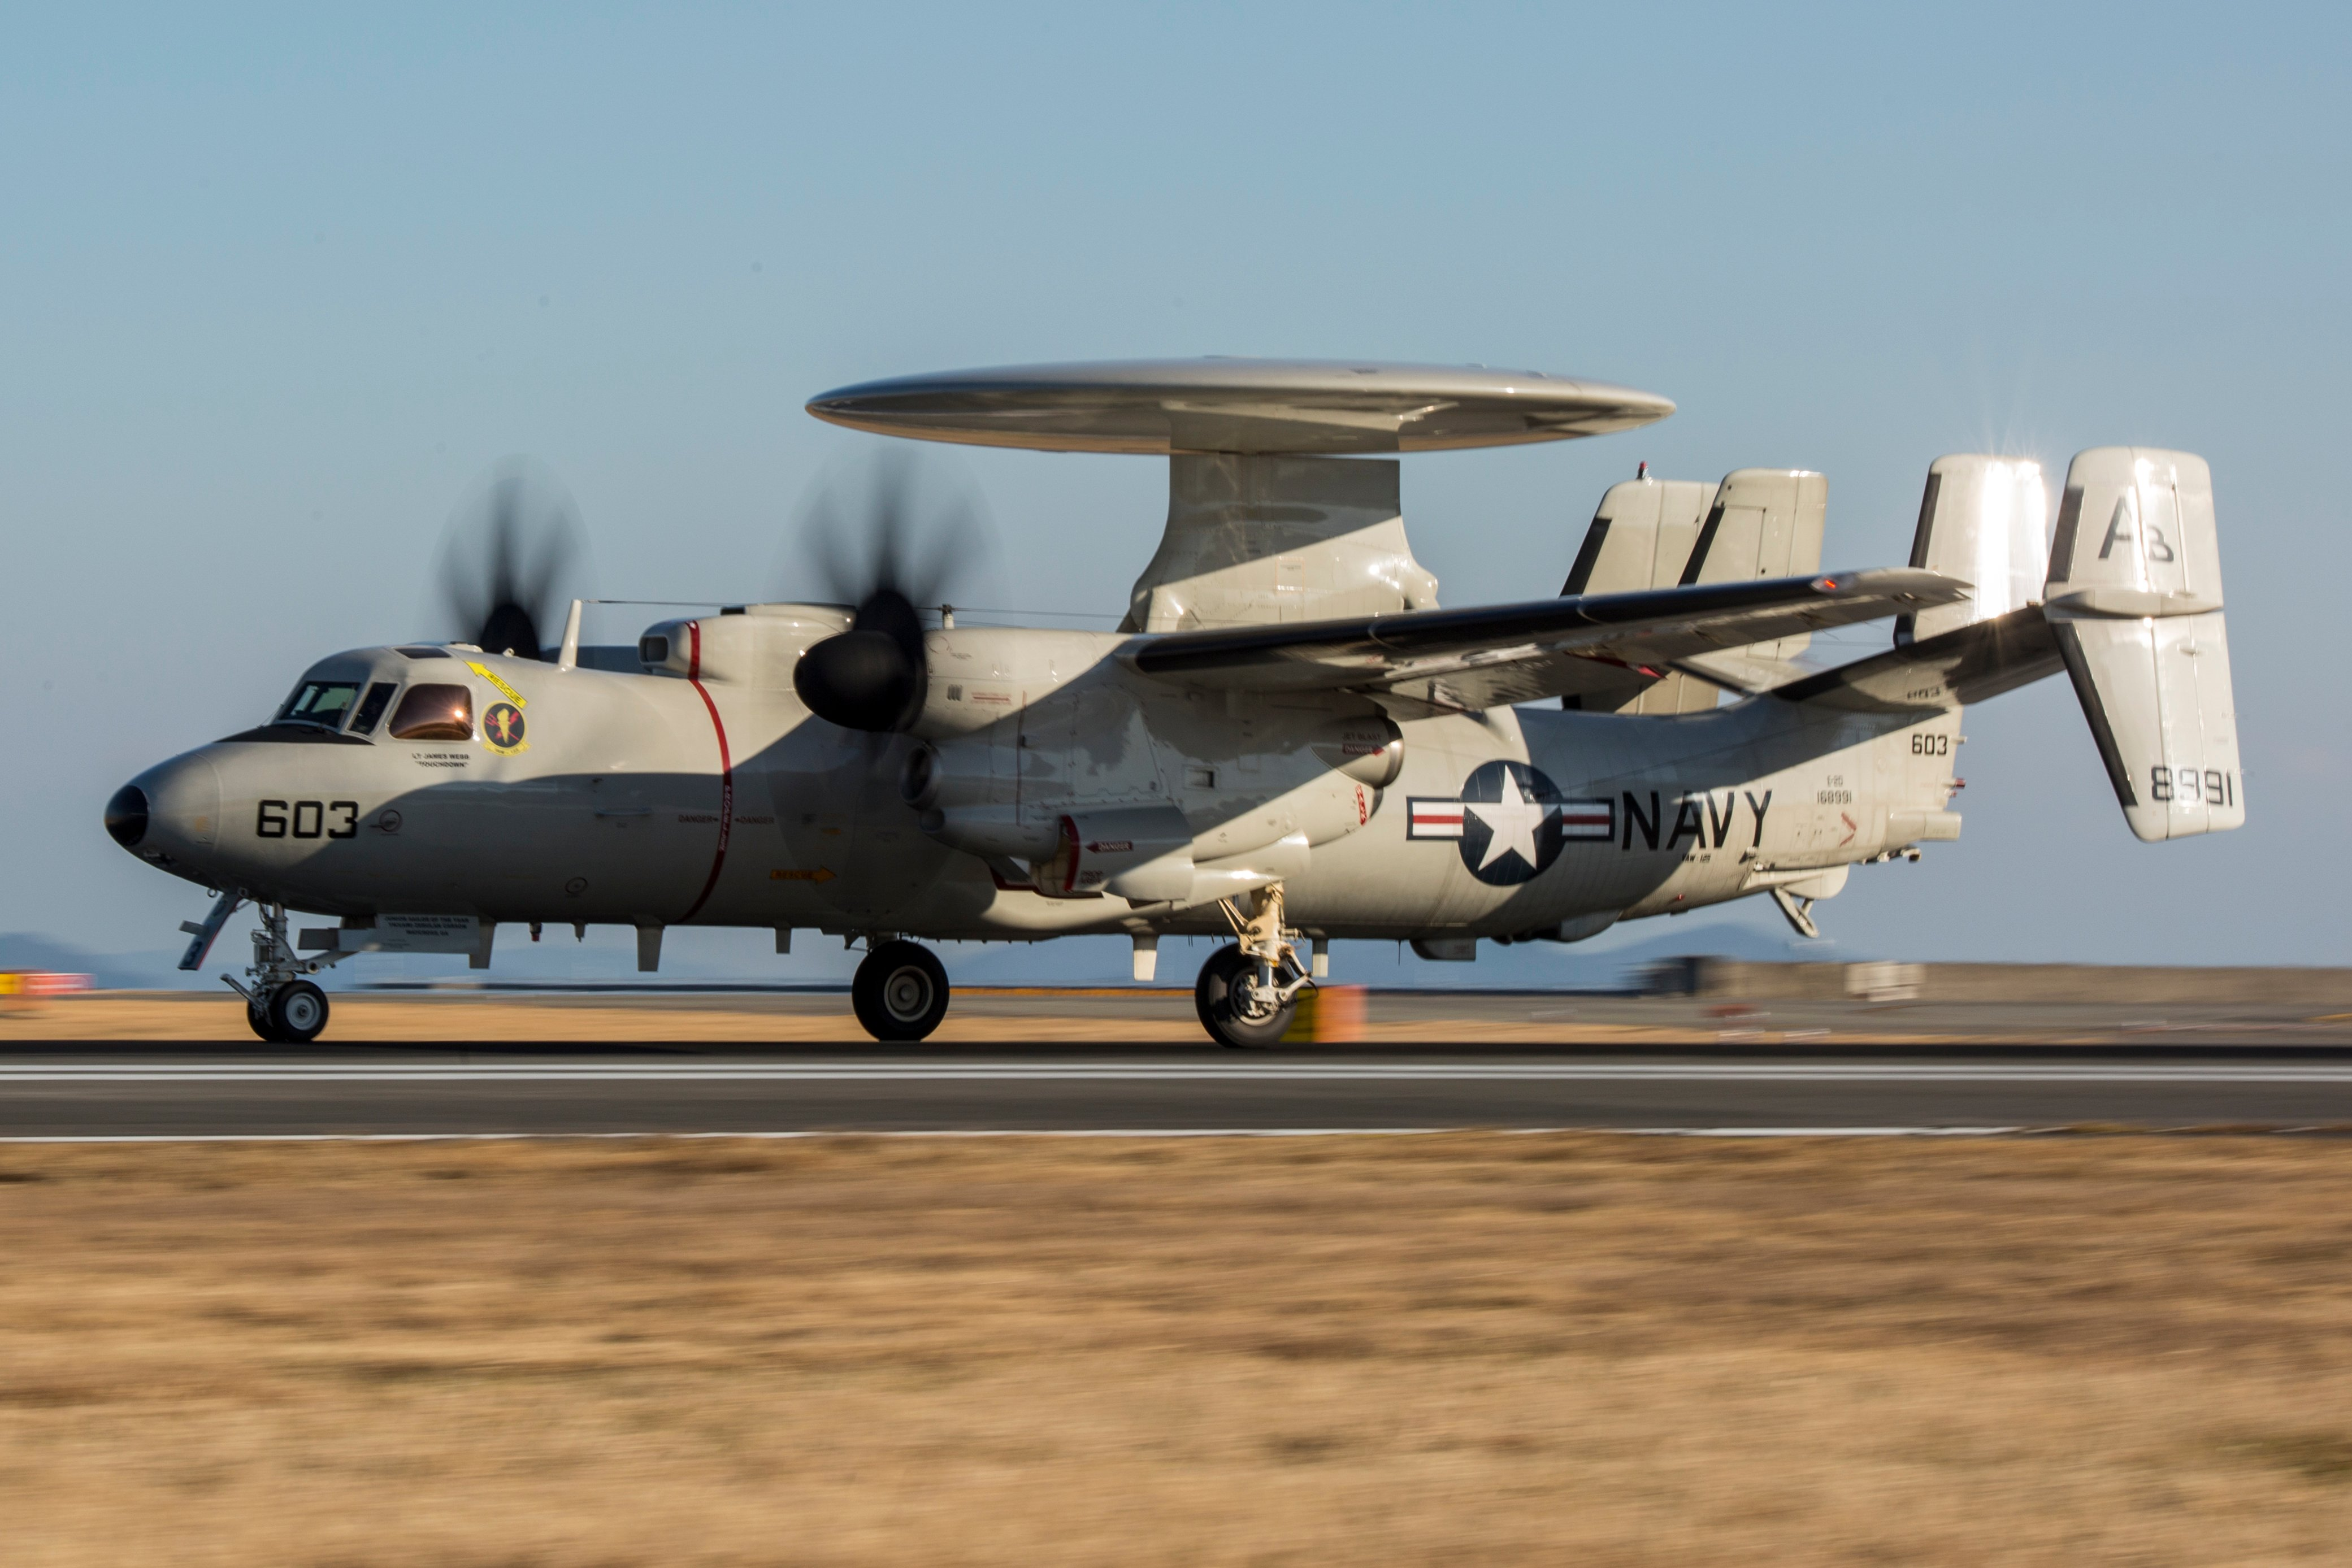 E-2D Advanced Hawkeye [USMC/Cpl Aaron Henson]